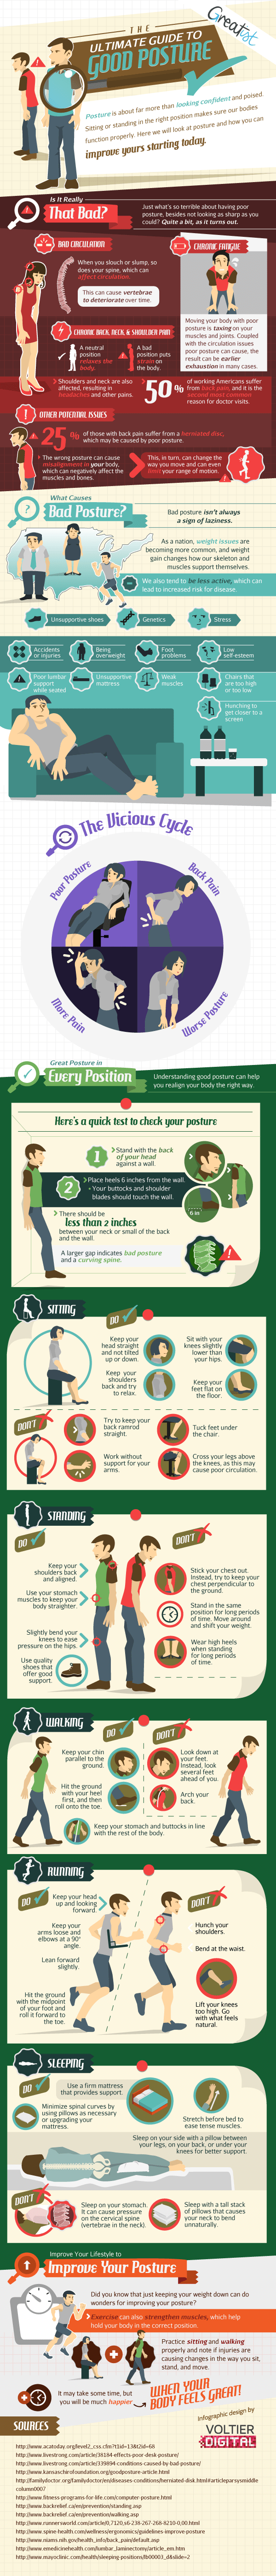 The Ultimate Guide to Good Posture | ecogreenlove